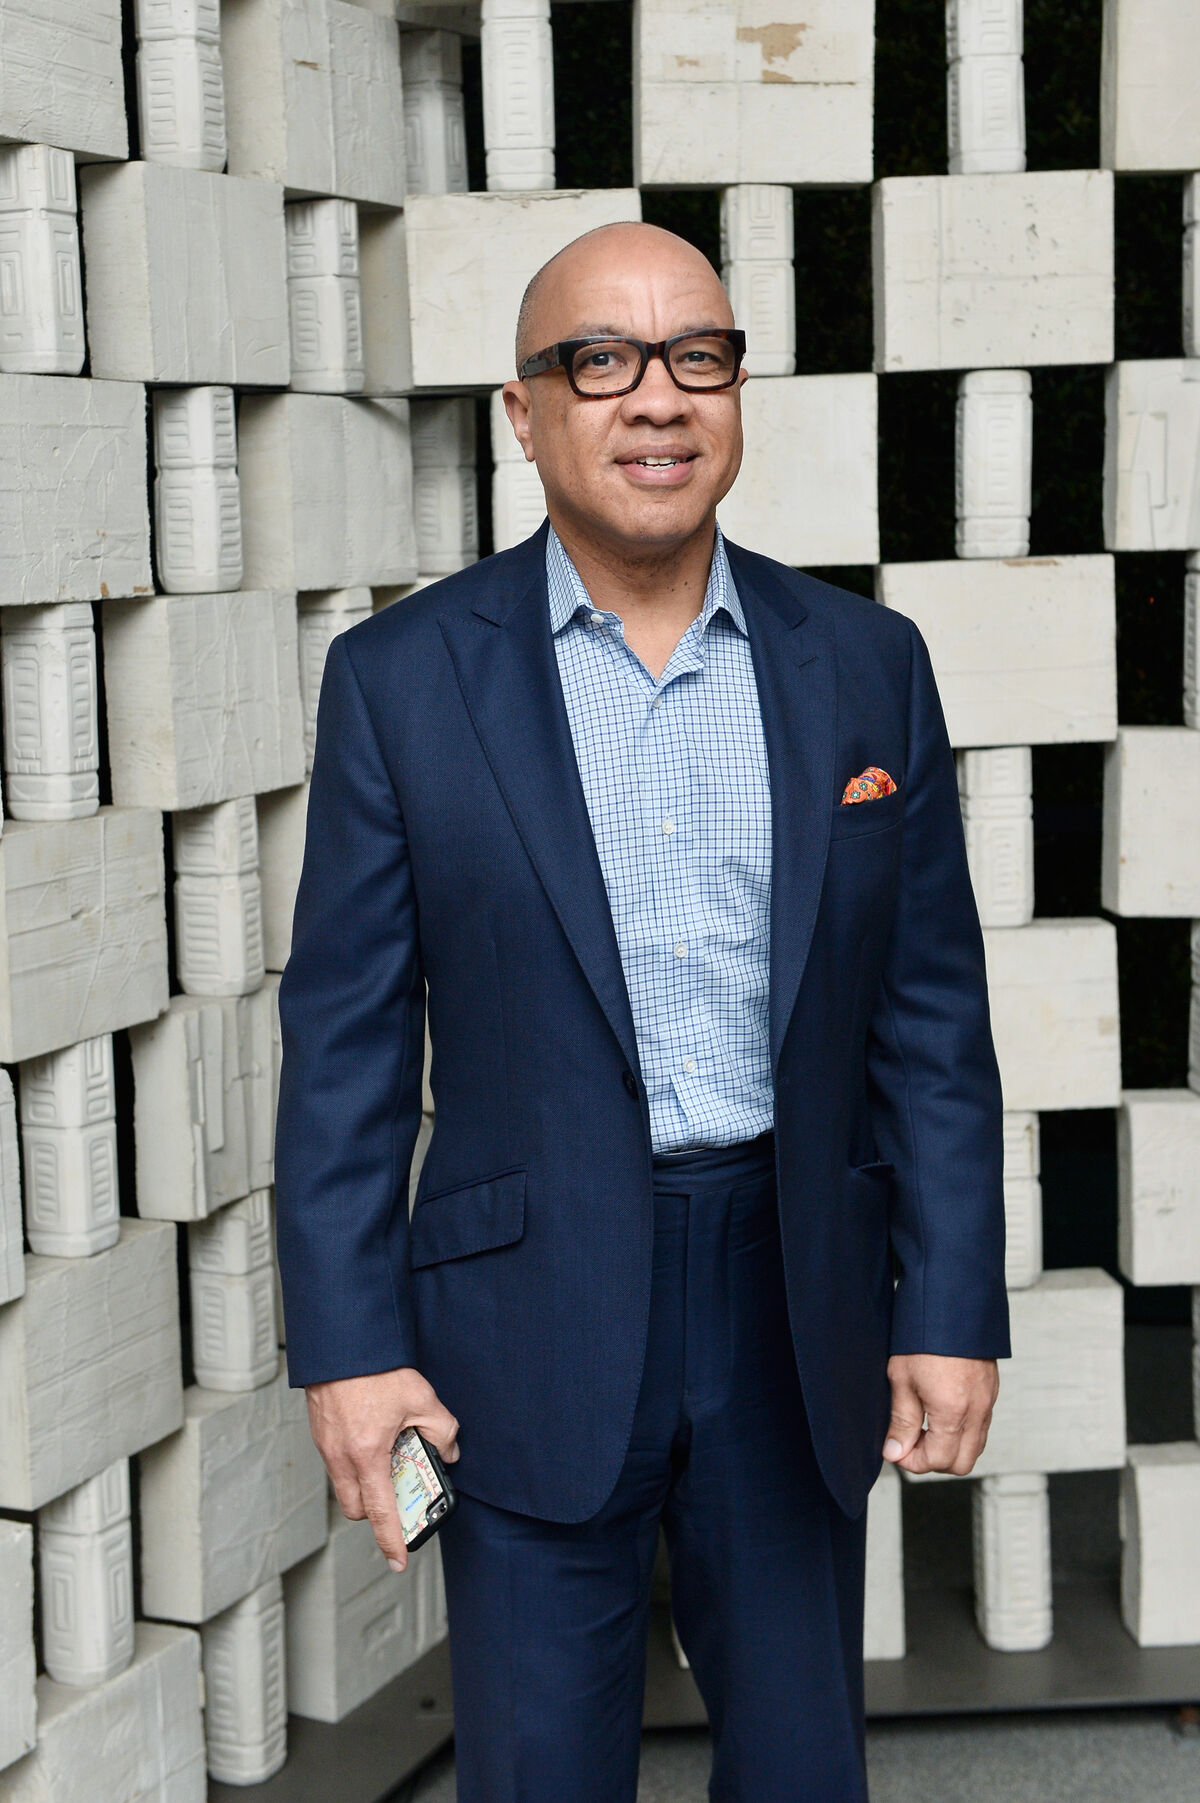 Darren Walker, president of the Ford Foundation. Photo by Stefanie Keenan via Getty Images for Hammer Museum.